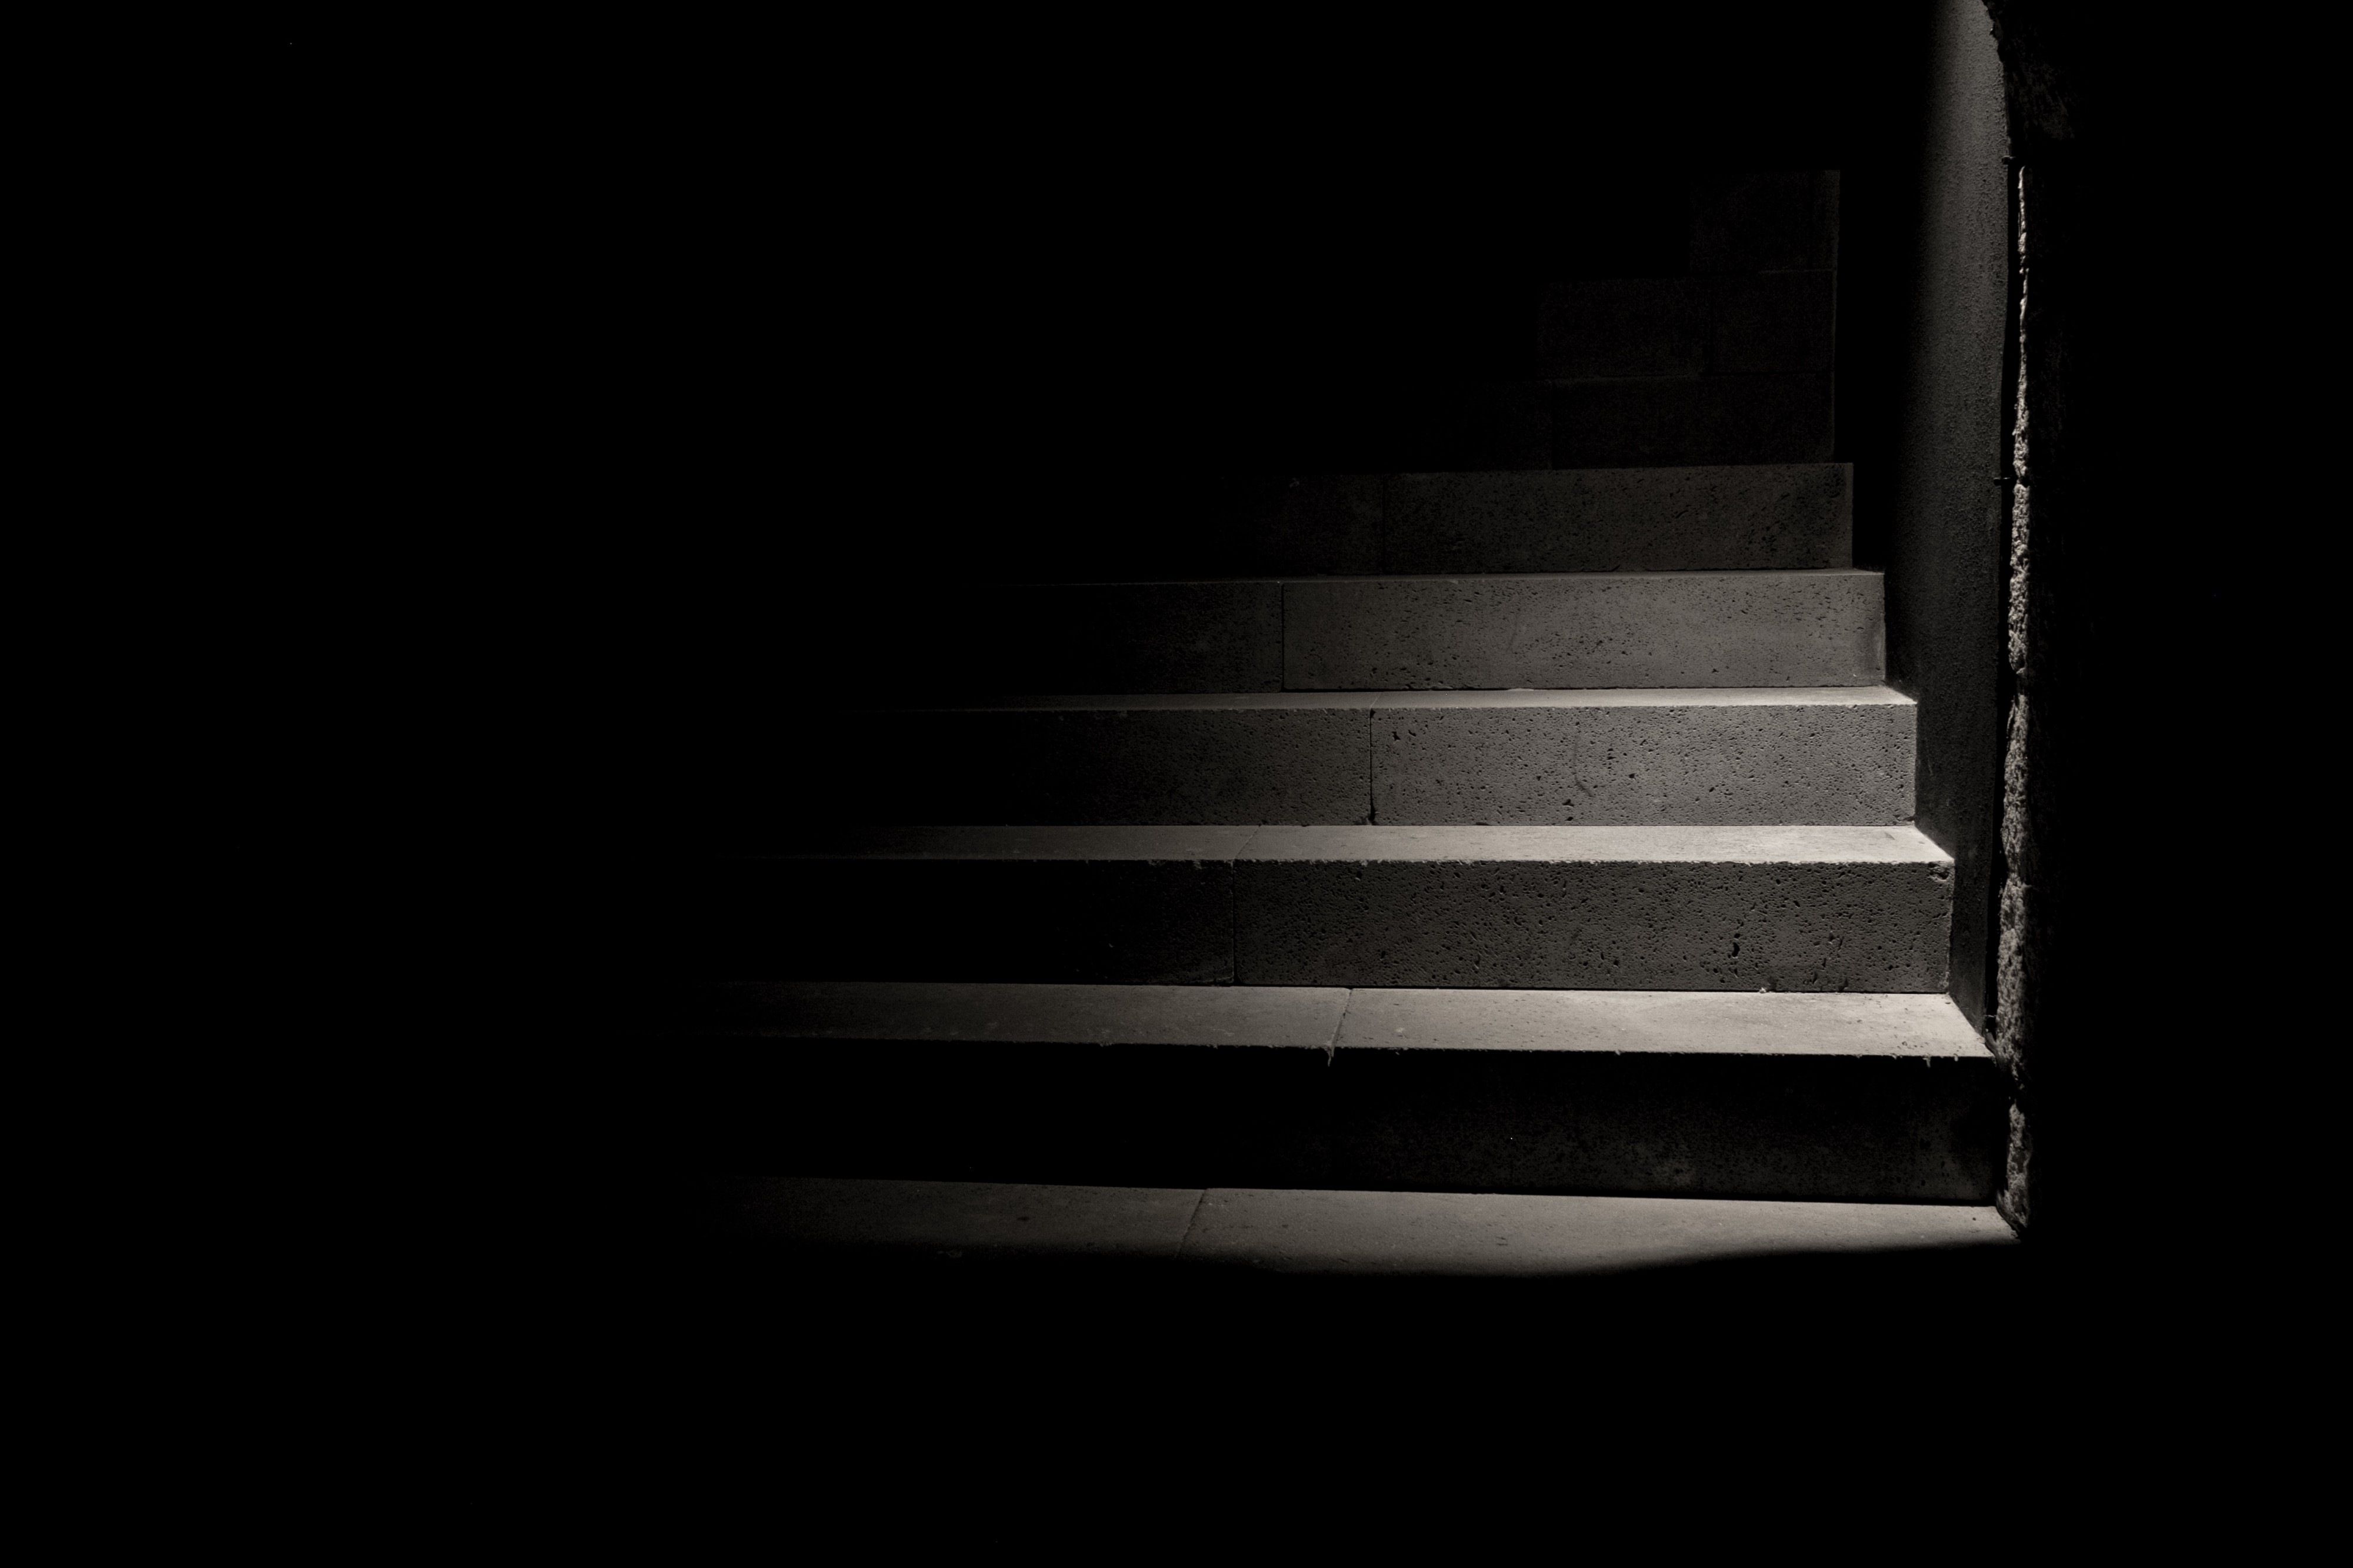 Shadowy stairs leading to an unknown destination